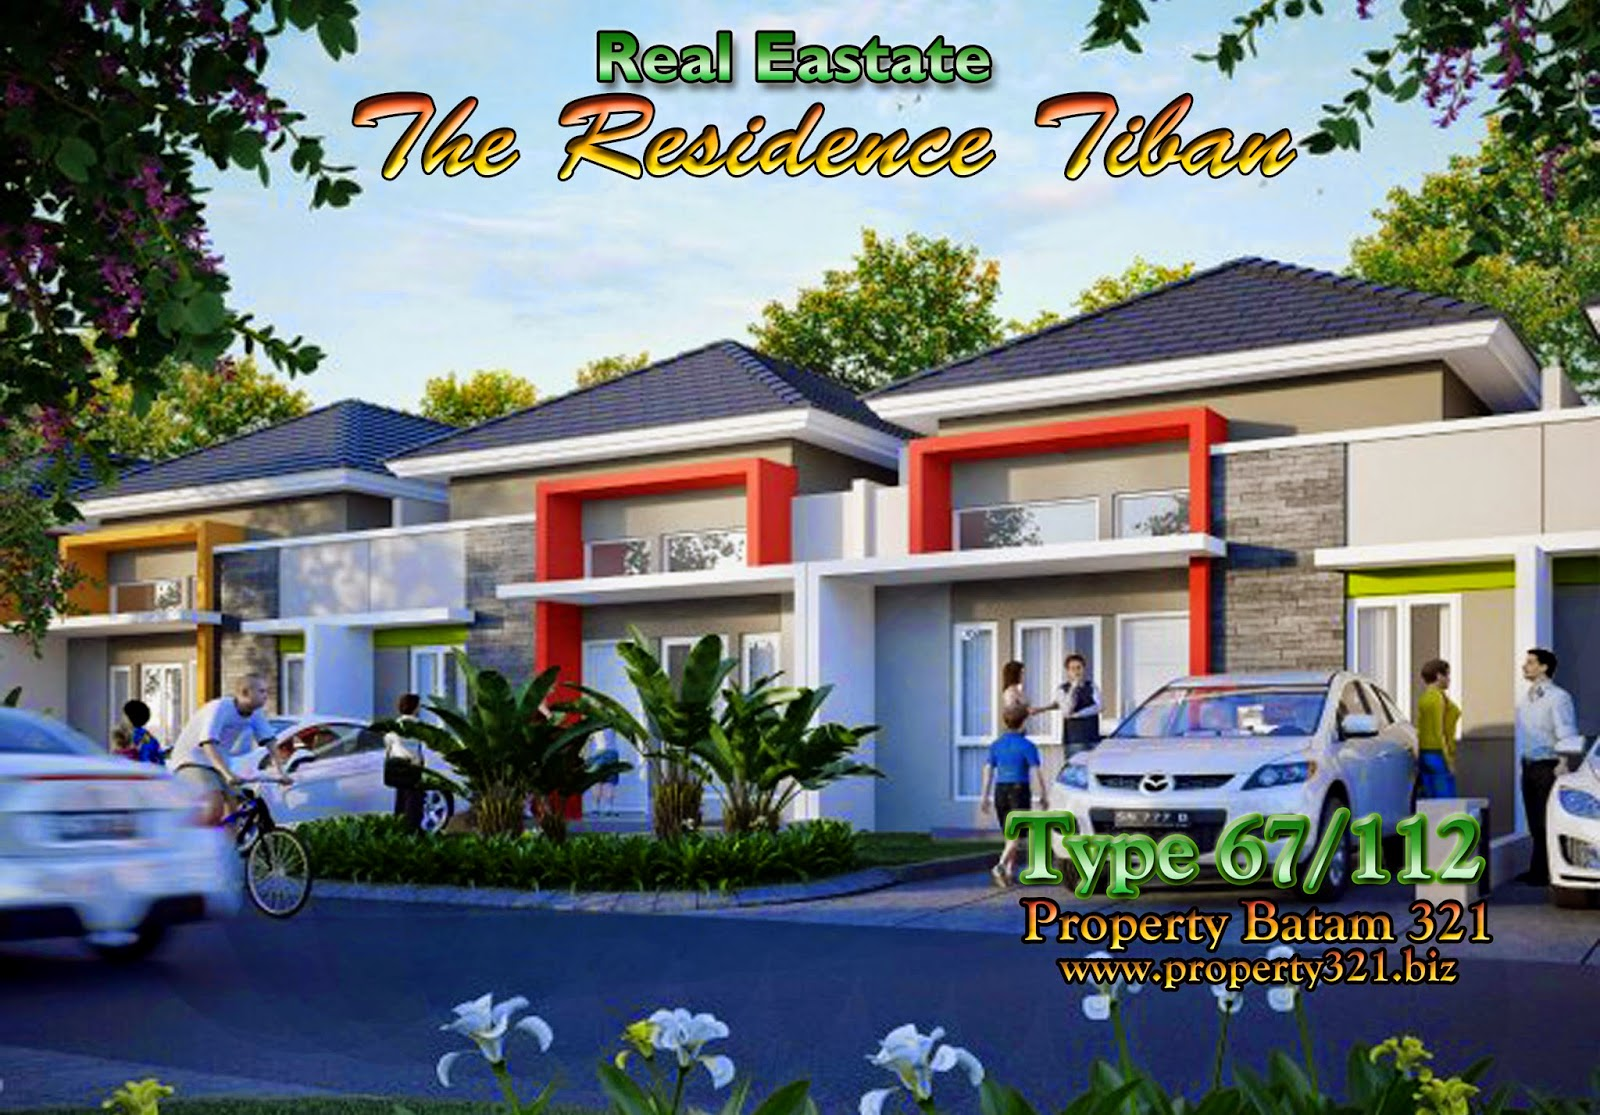 The residence Tiban BATAm.